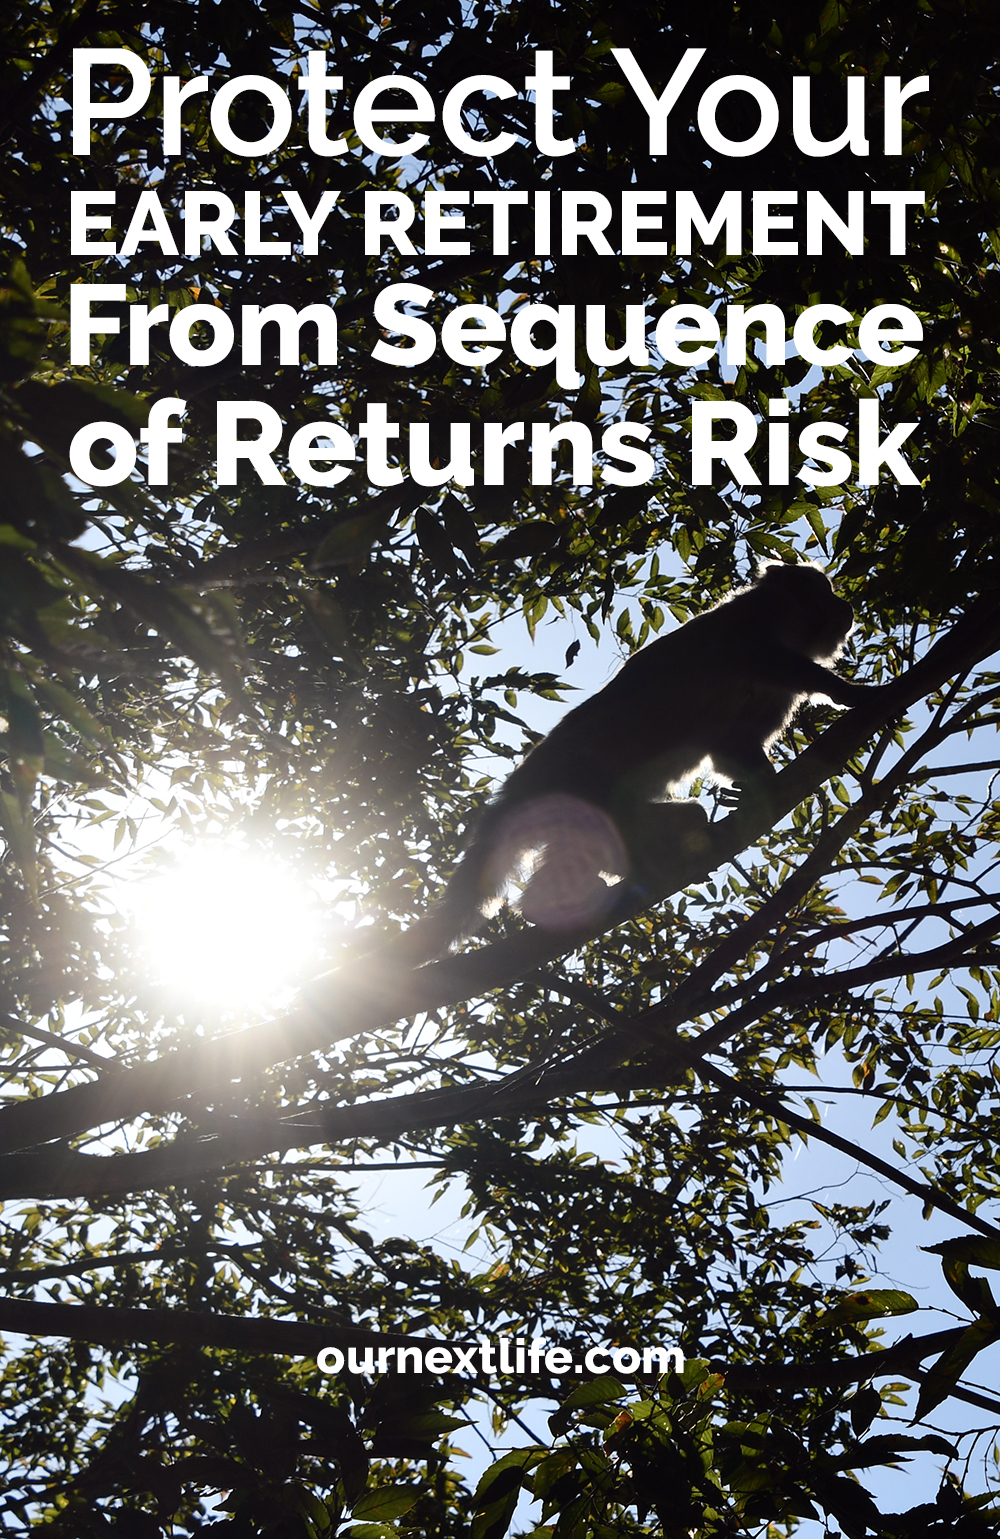 Protect your early retirement from sequence of returns risk // Our Next Life // early retirement, financial independence, investing, financial planning, retirement